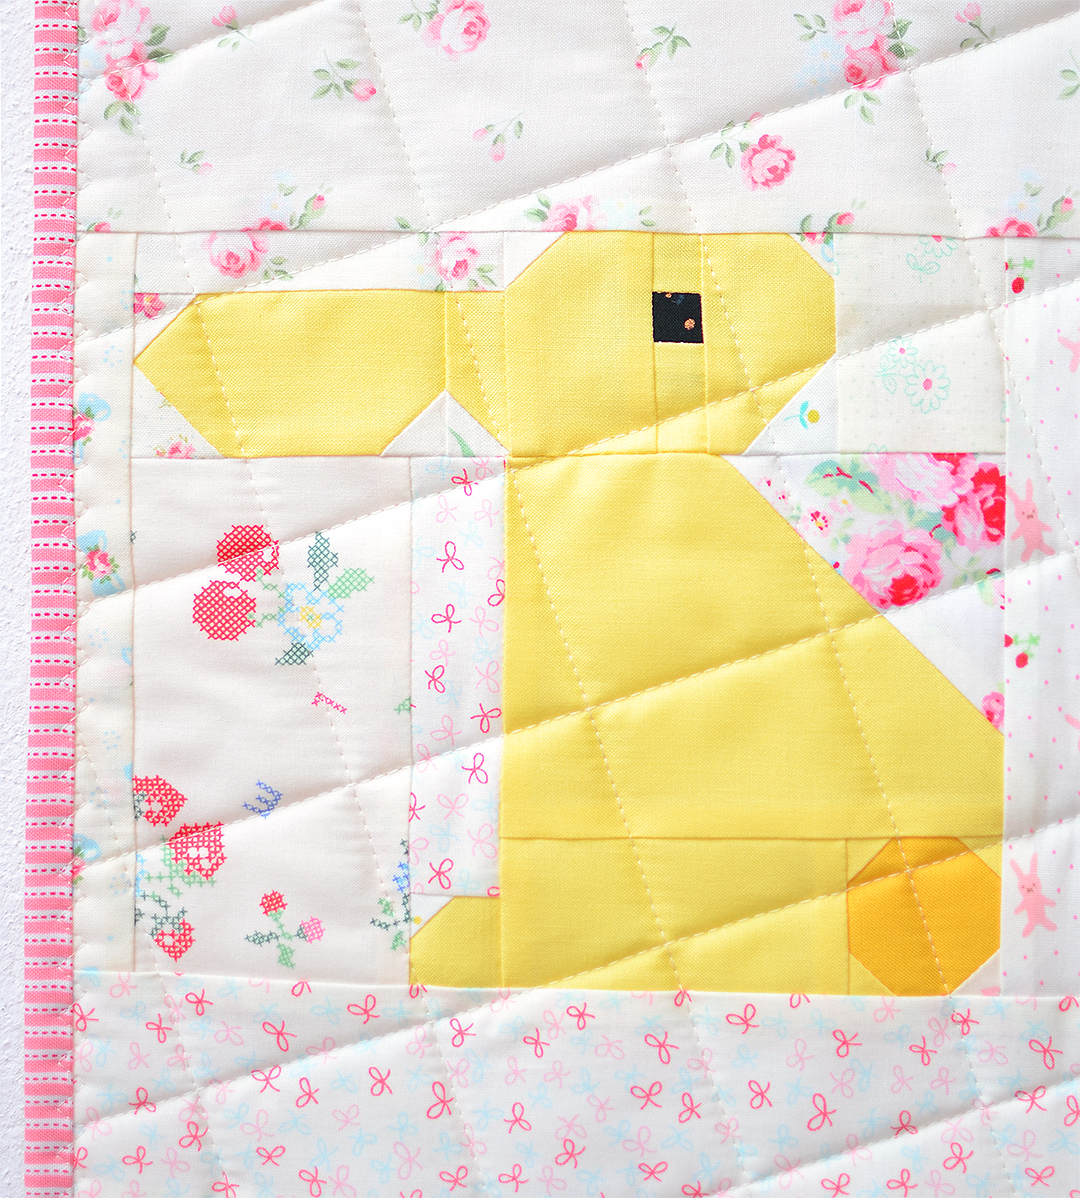 Bunny Easter quilt pattern - yellow bunny